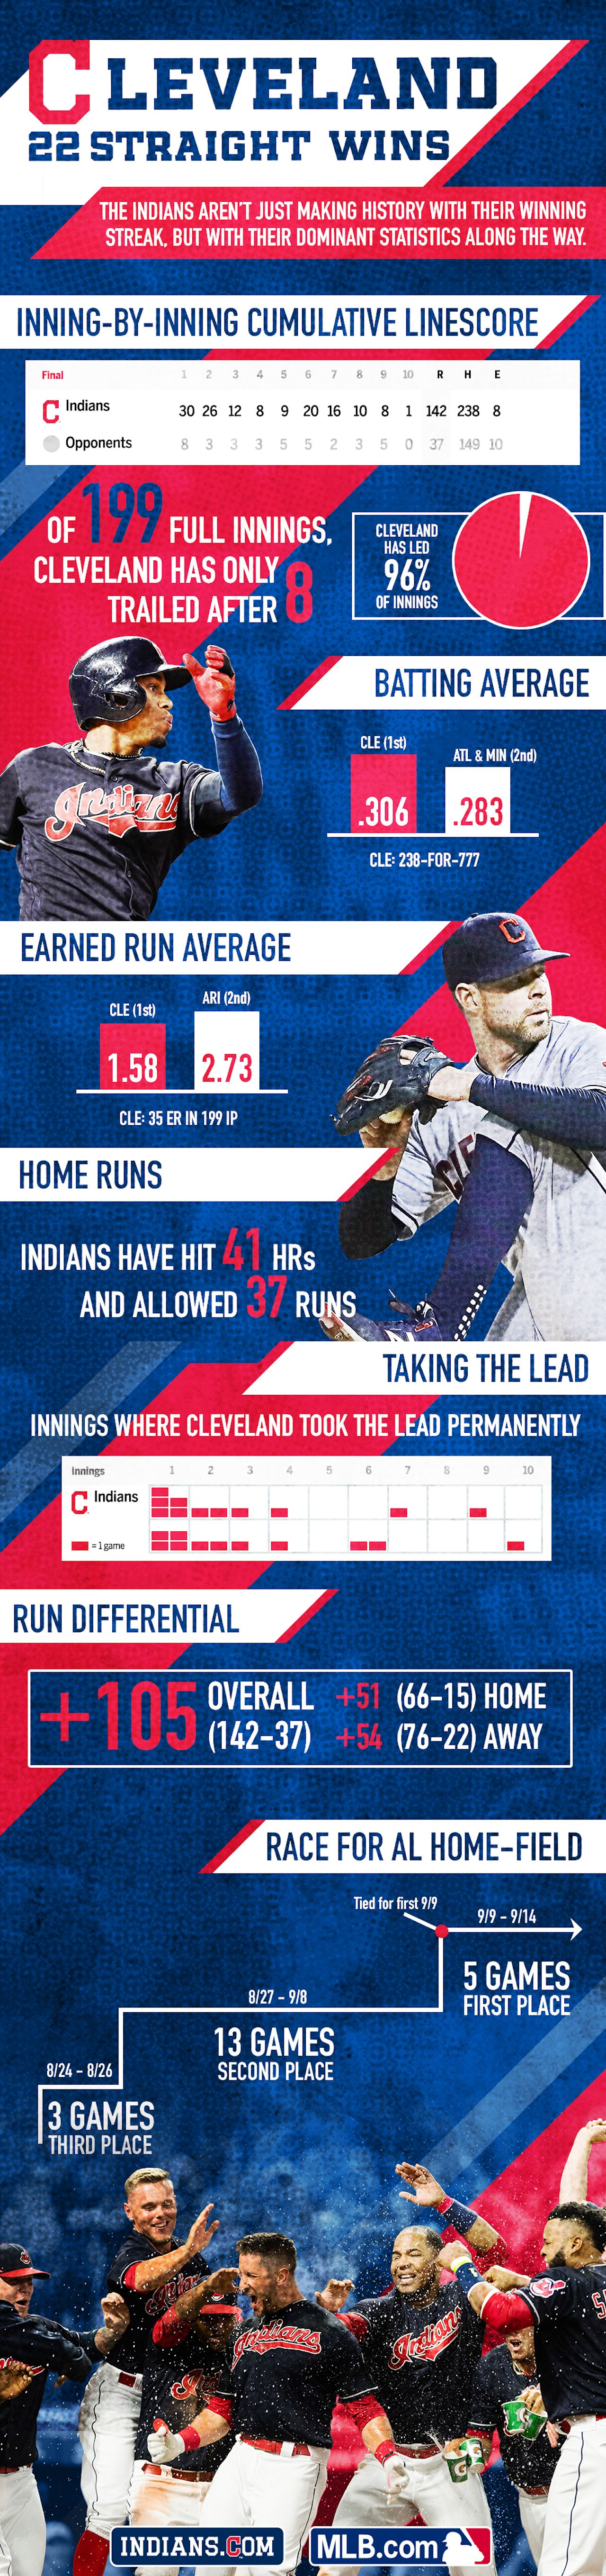 Cleveland Indians Made Baseball History W Their 22nd Consecutive Victory They Ve Set The Mod Cleveland Indians Baseball Cleveland Baseball Cleveland Indians